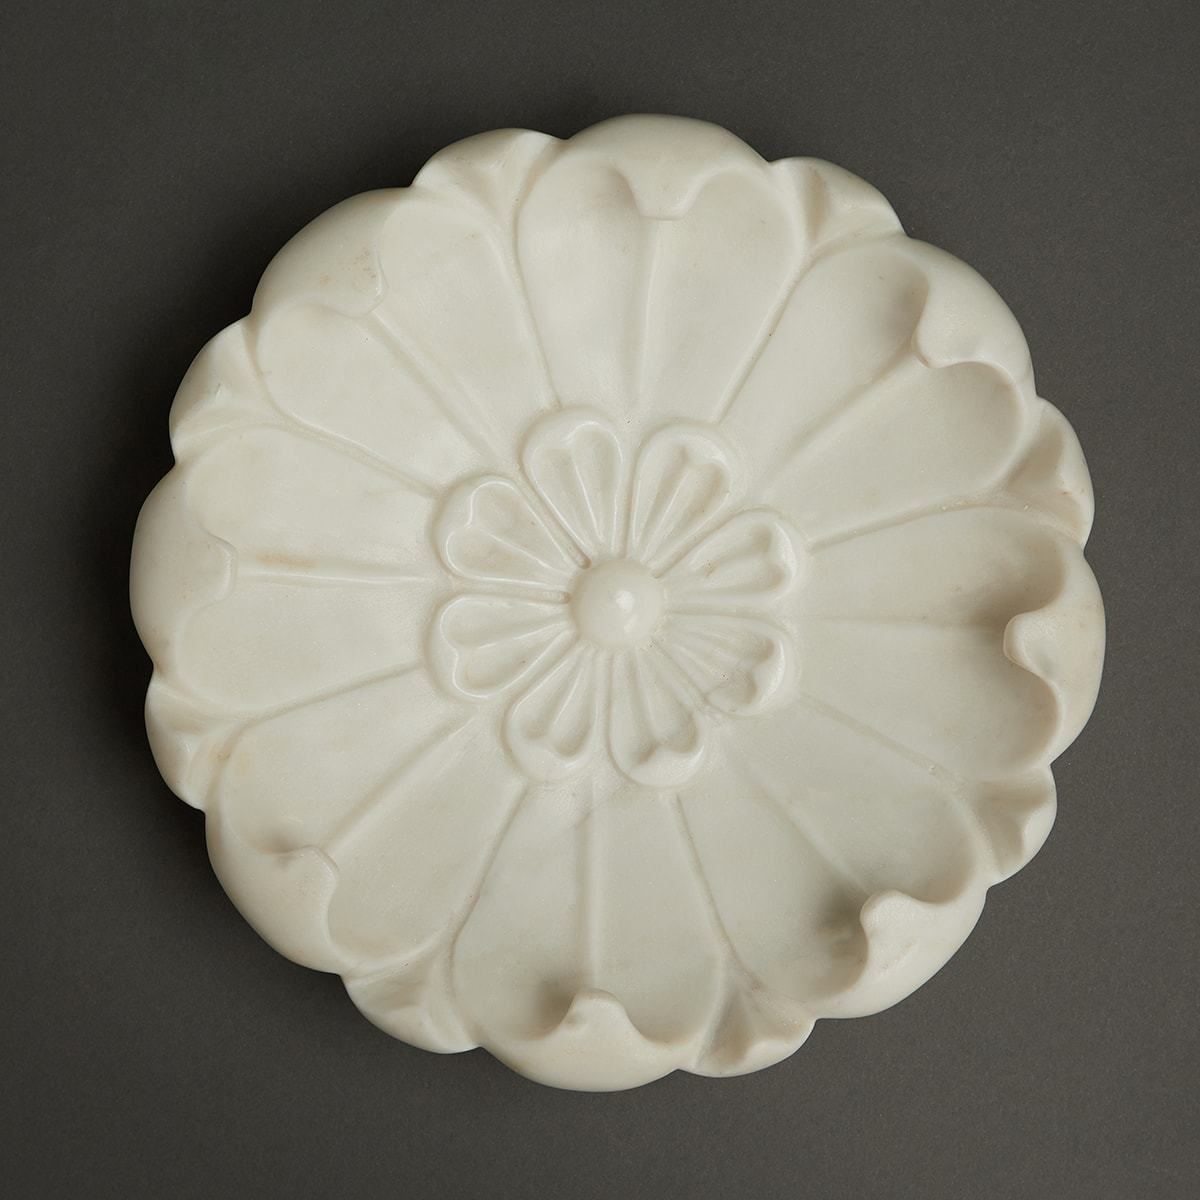 Ivory Awadh Marble Decorative (Lotus) by Ritu Kumar Home - Home Artisan